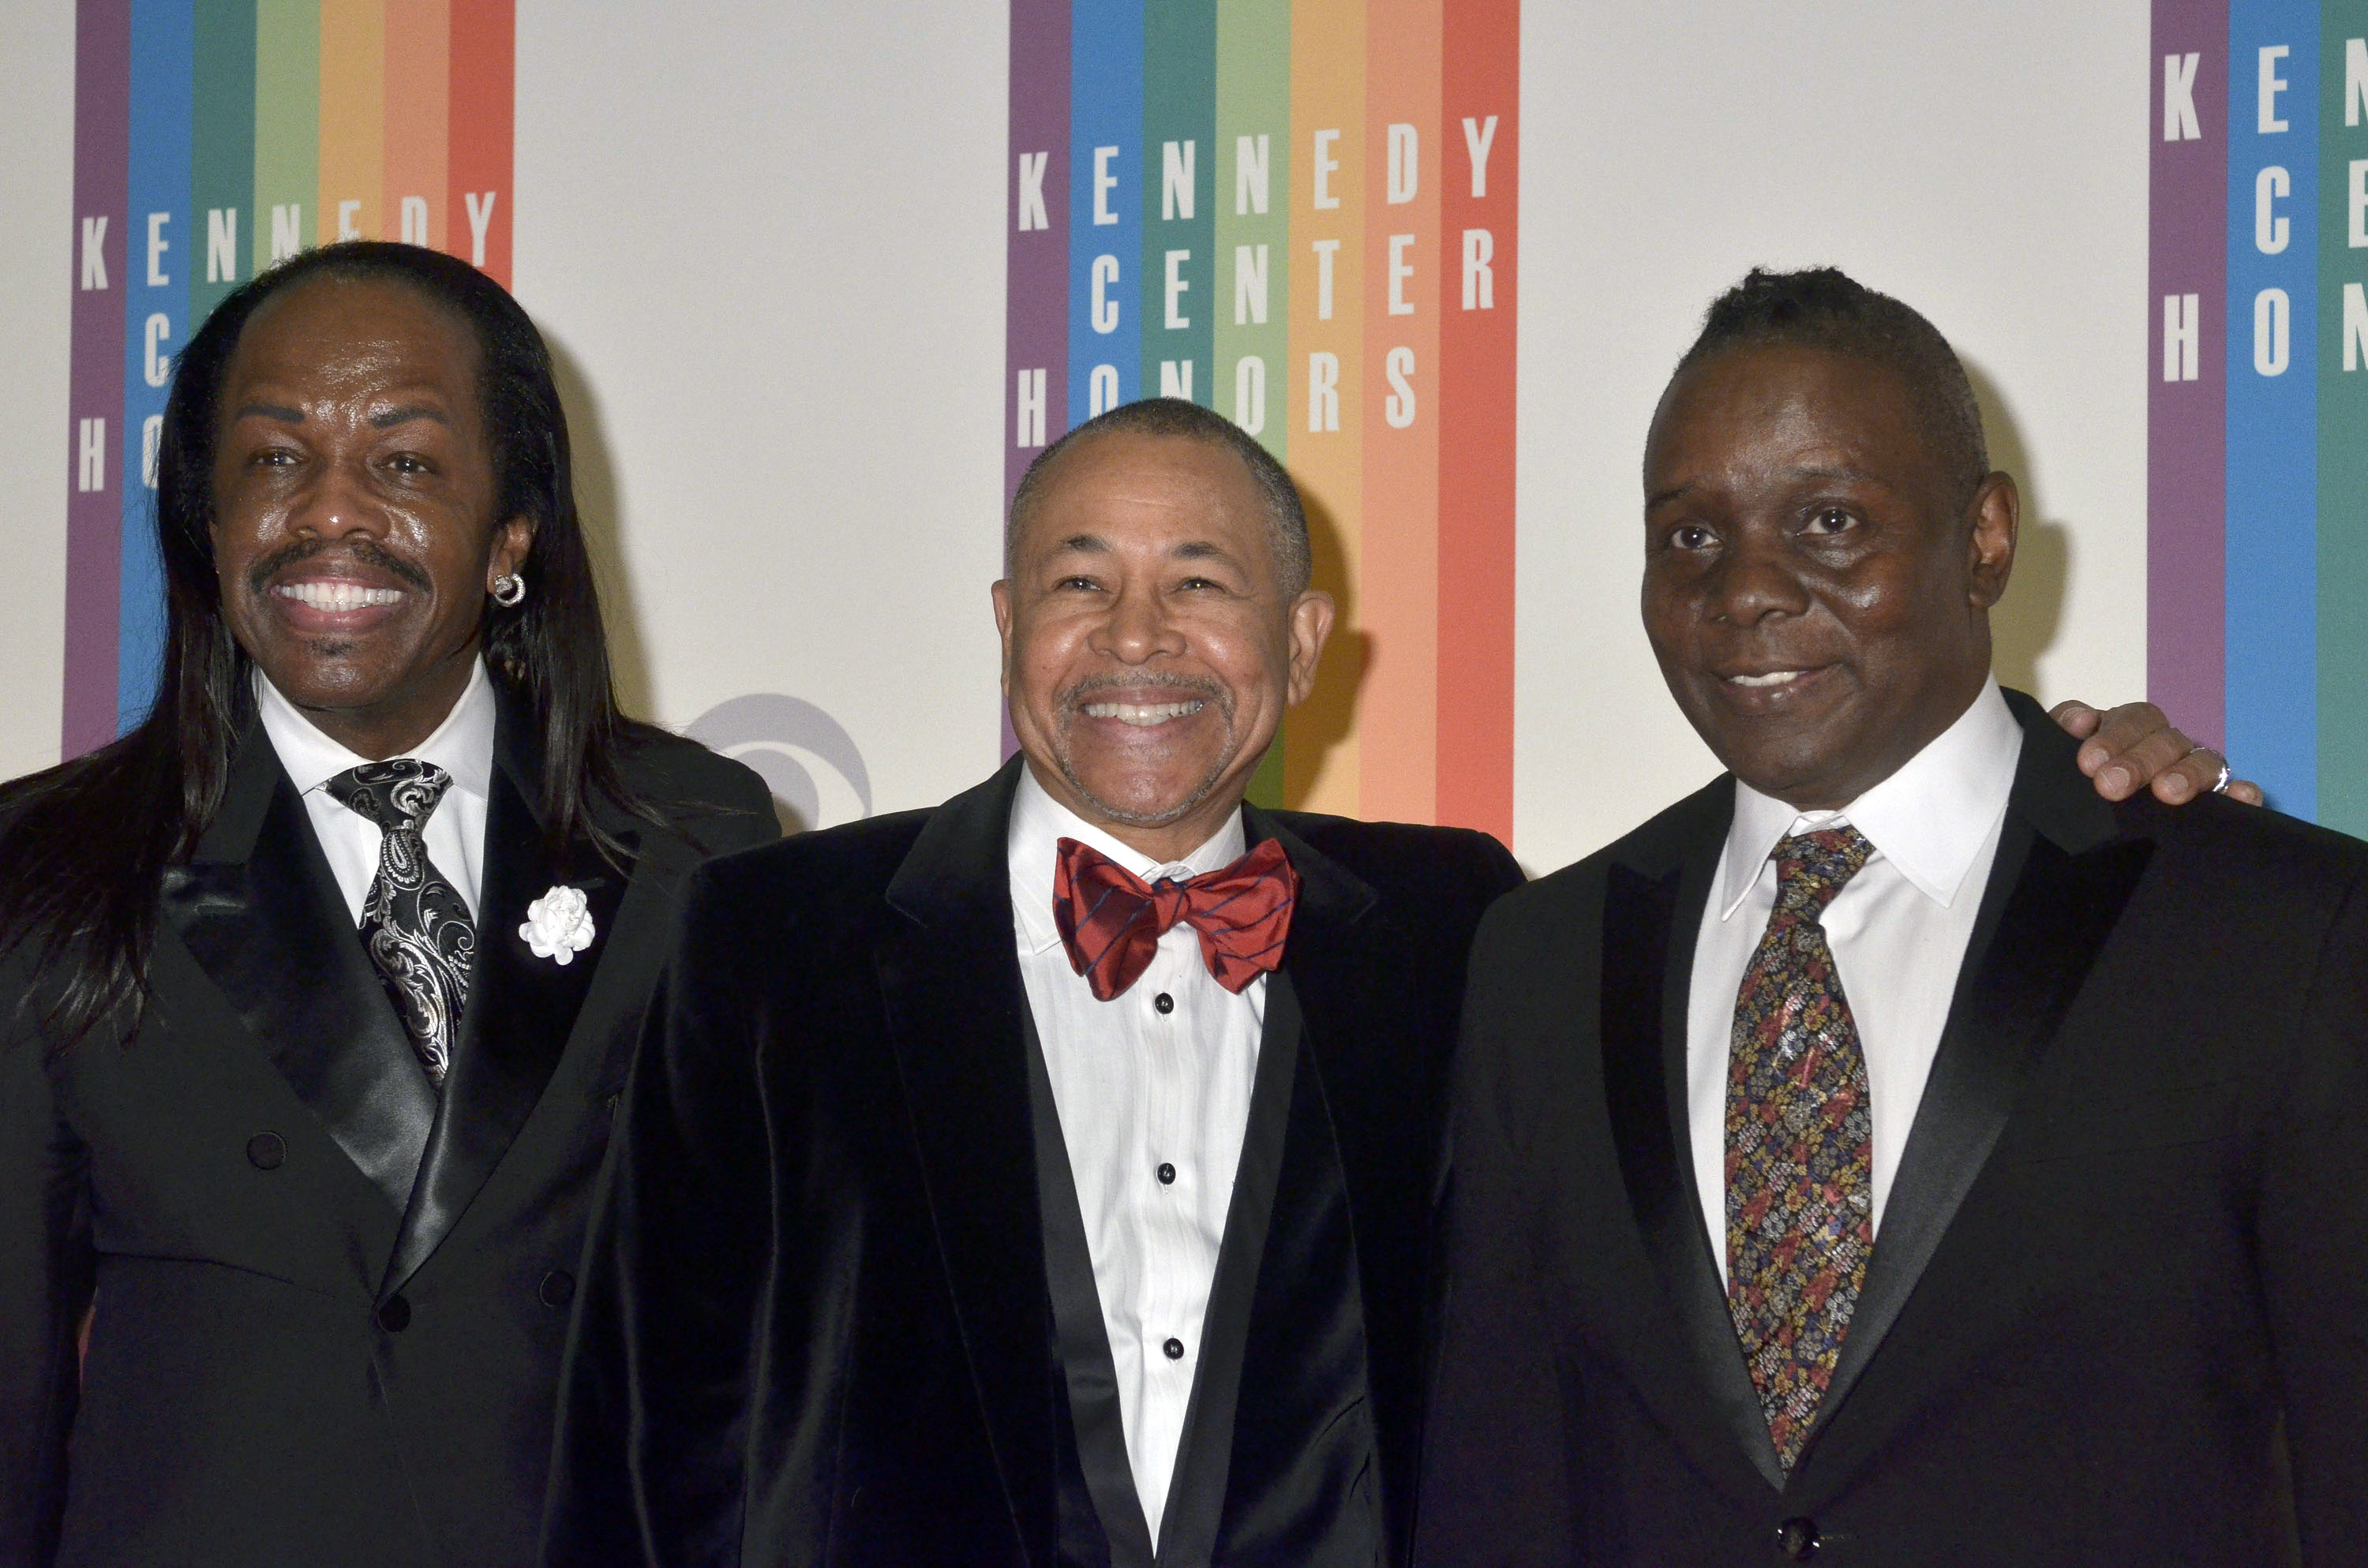 37th Annual Kennedy Center Honors